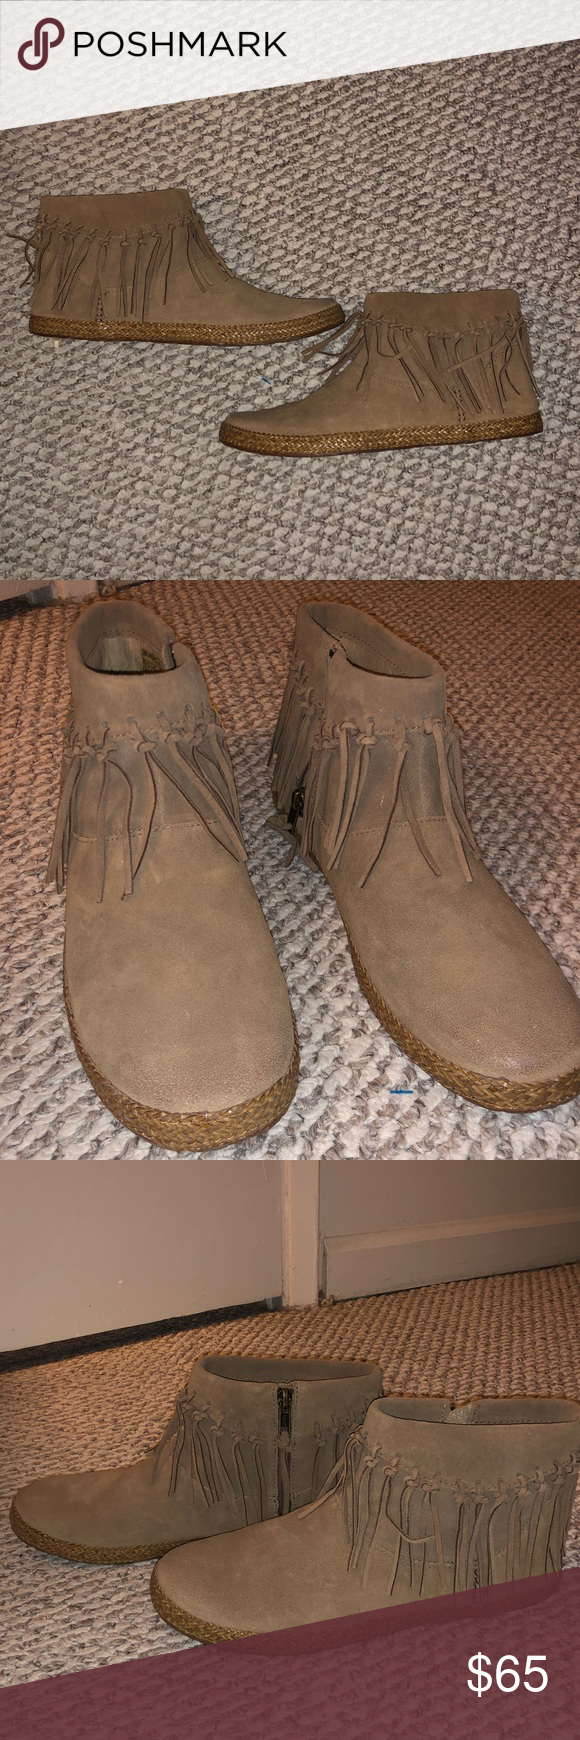 755bf05591a Ugg Shenendoah Moccasin Booties Never worn, tan leather UGG moccasin ...